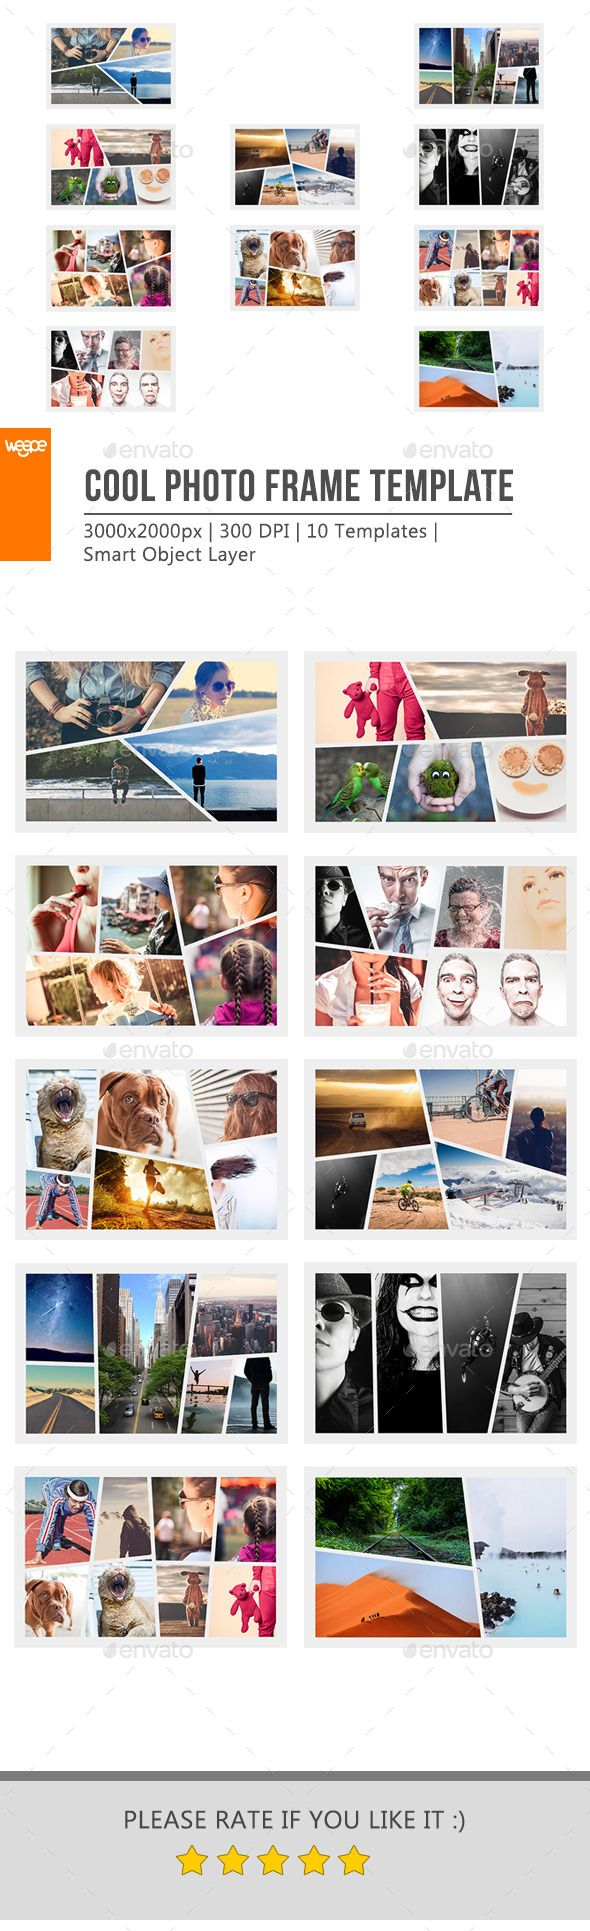 Cool Photo Frame Template | Pinterest | Frame template, Template and ...